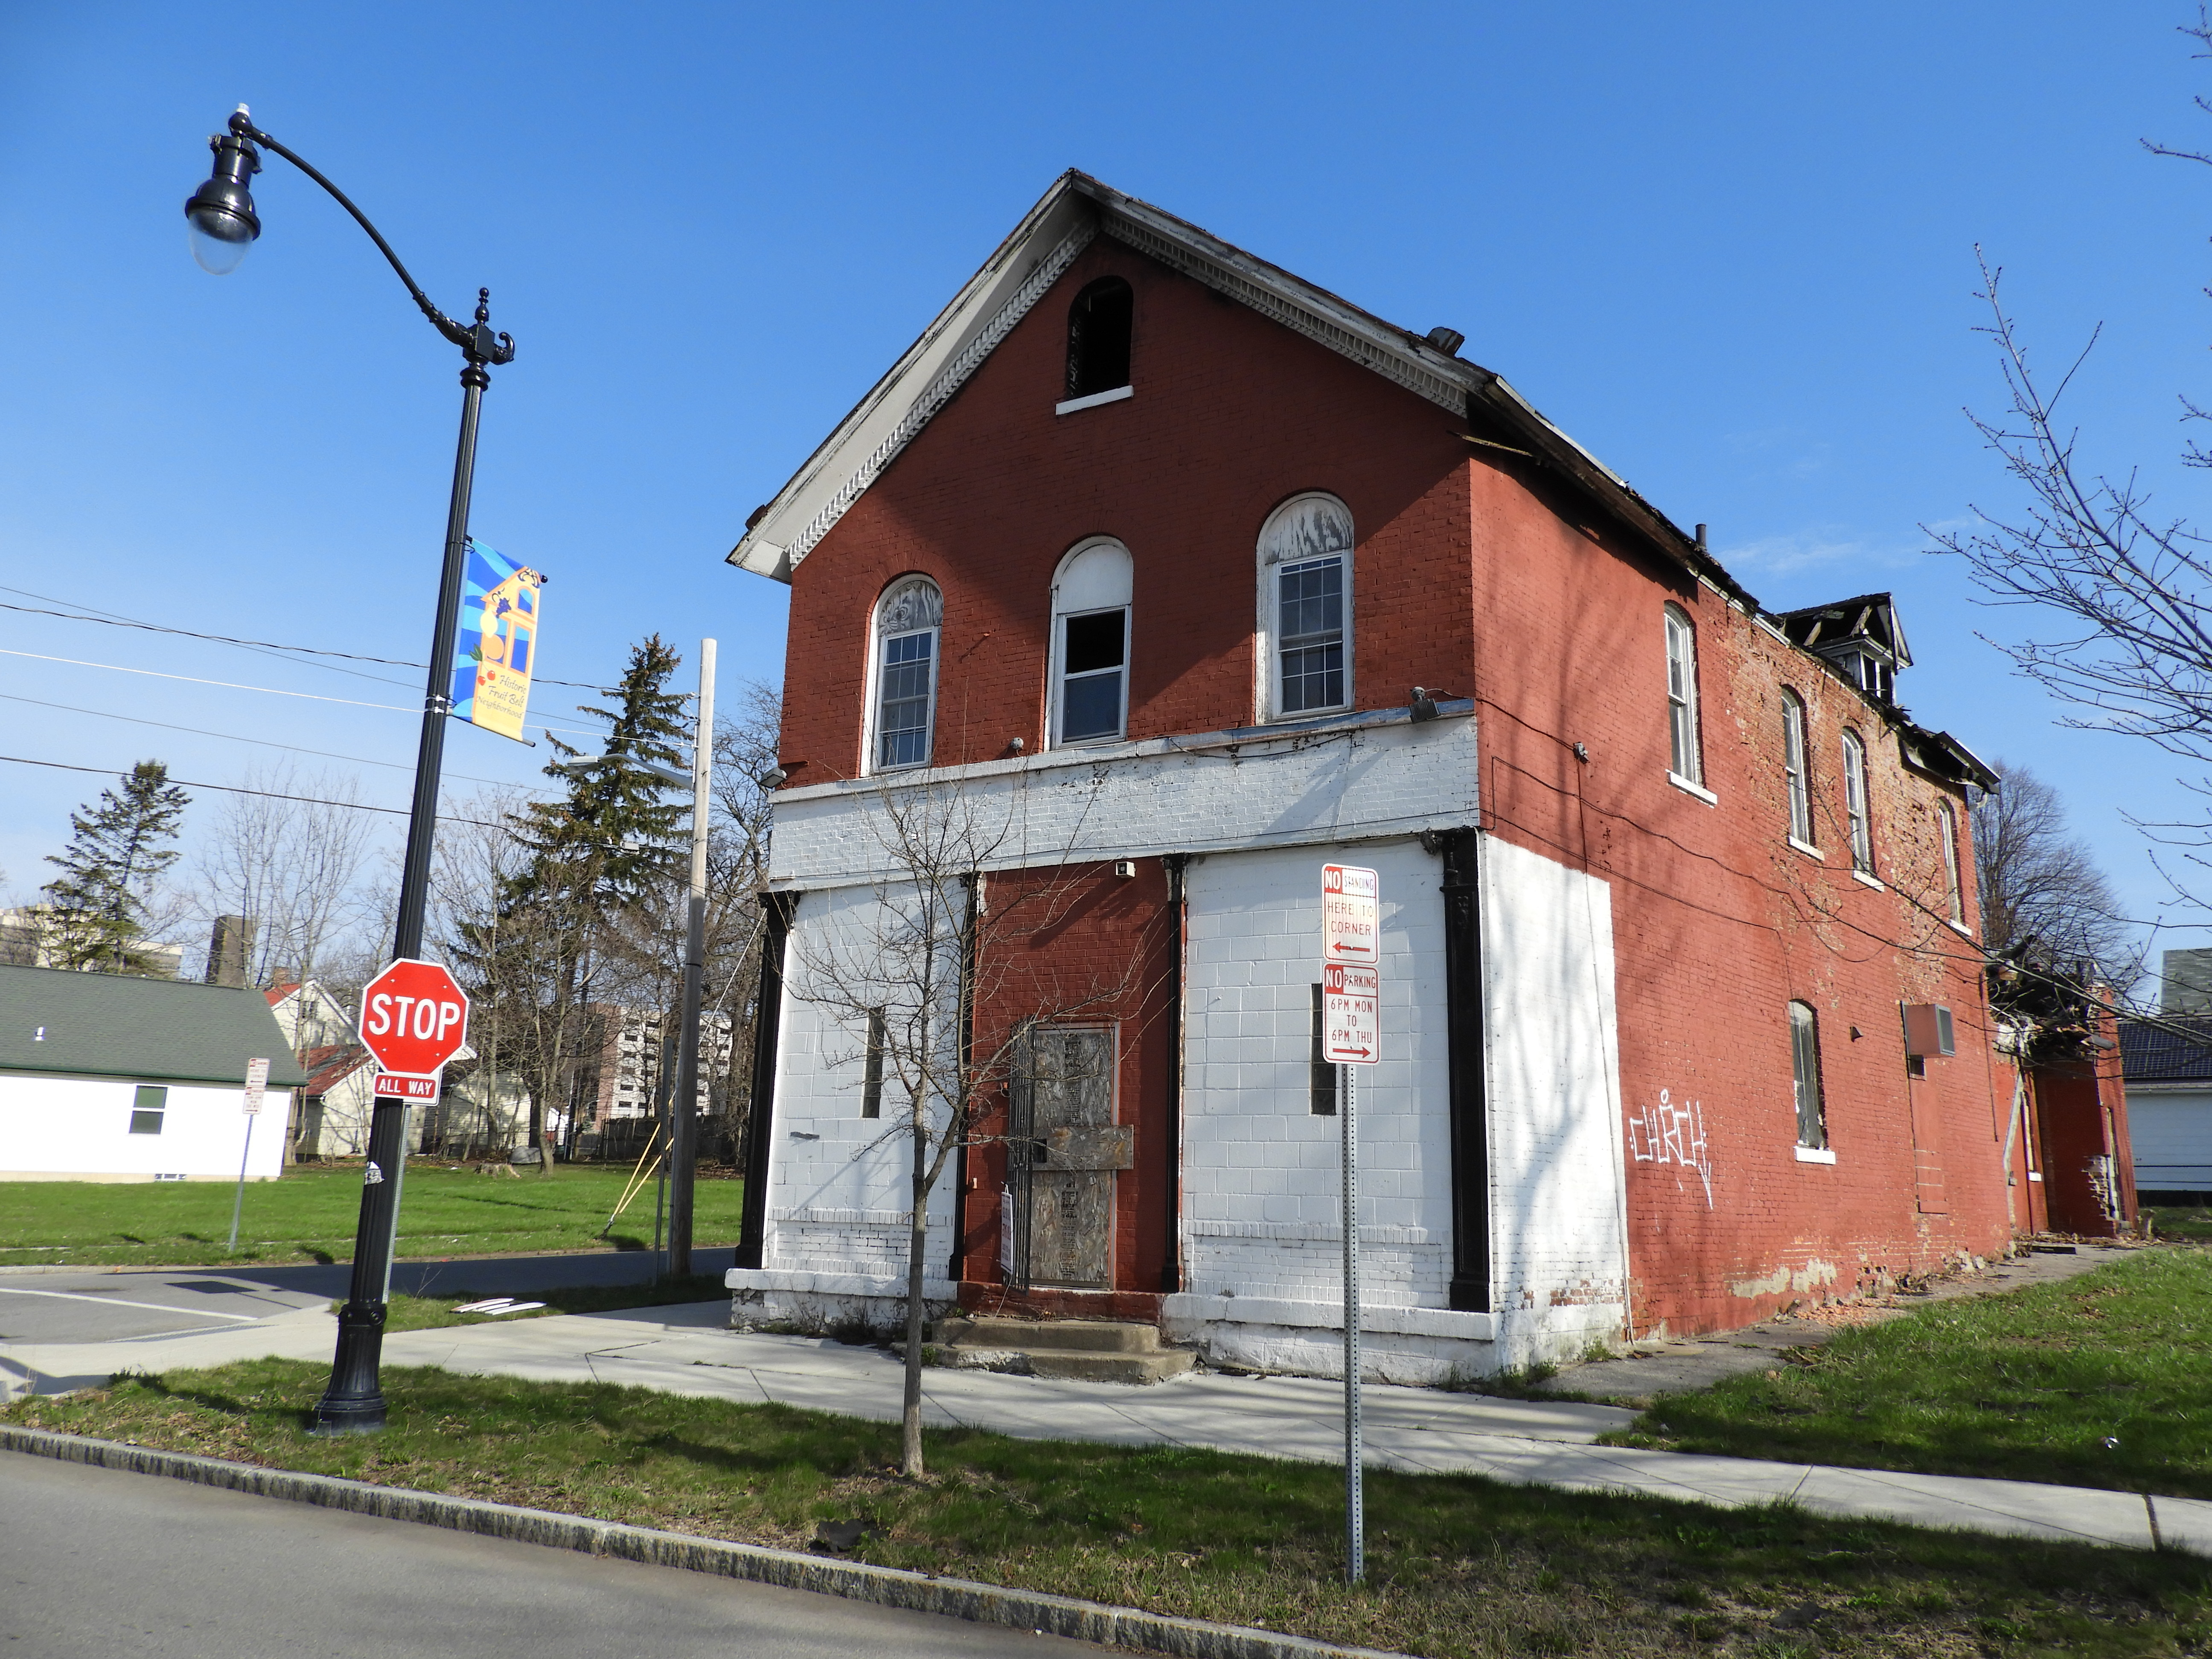 An emergency building will be demolished on the Robespierre in Petersburg 72